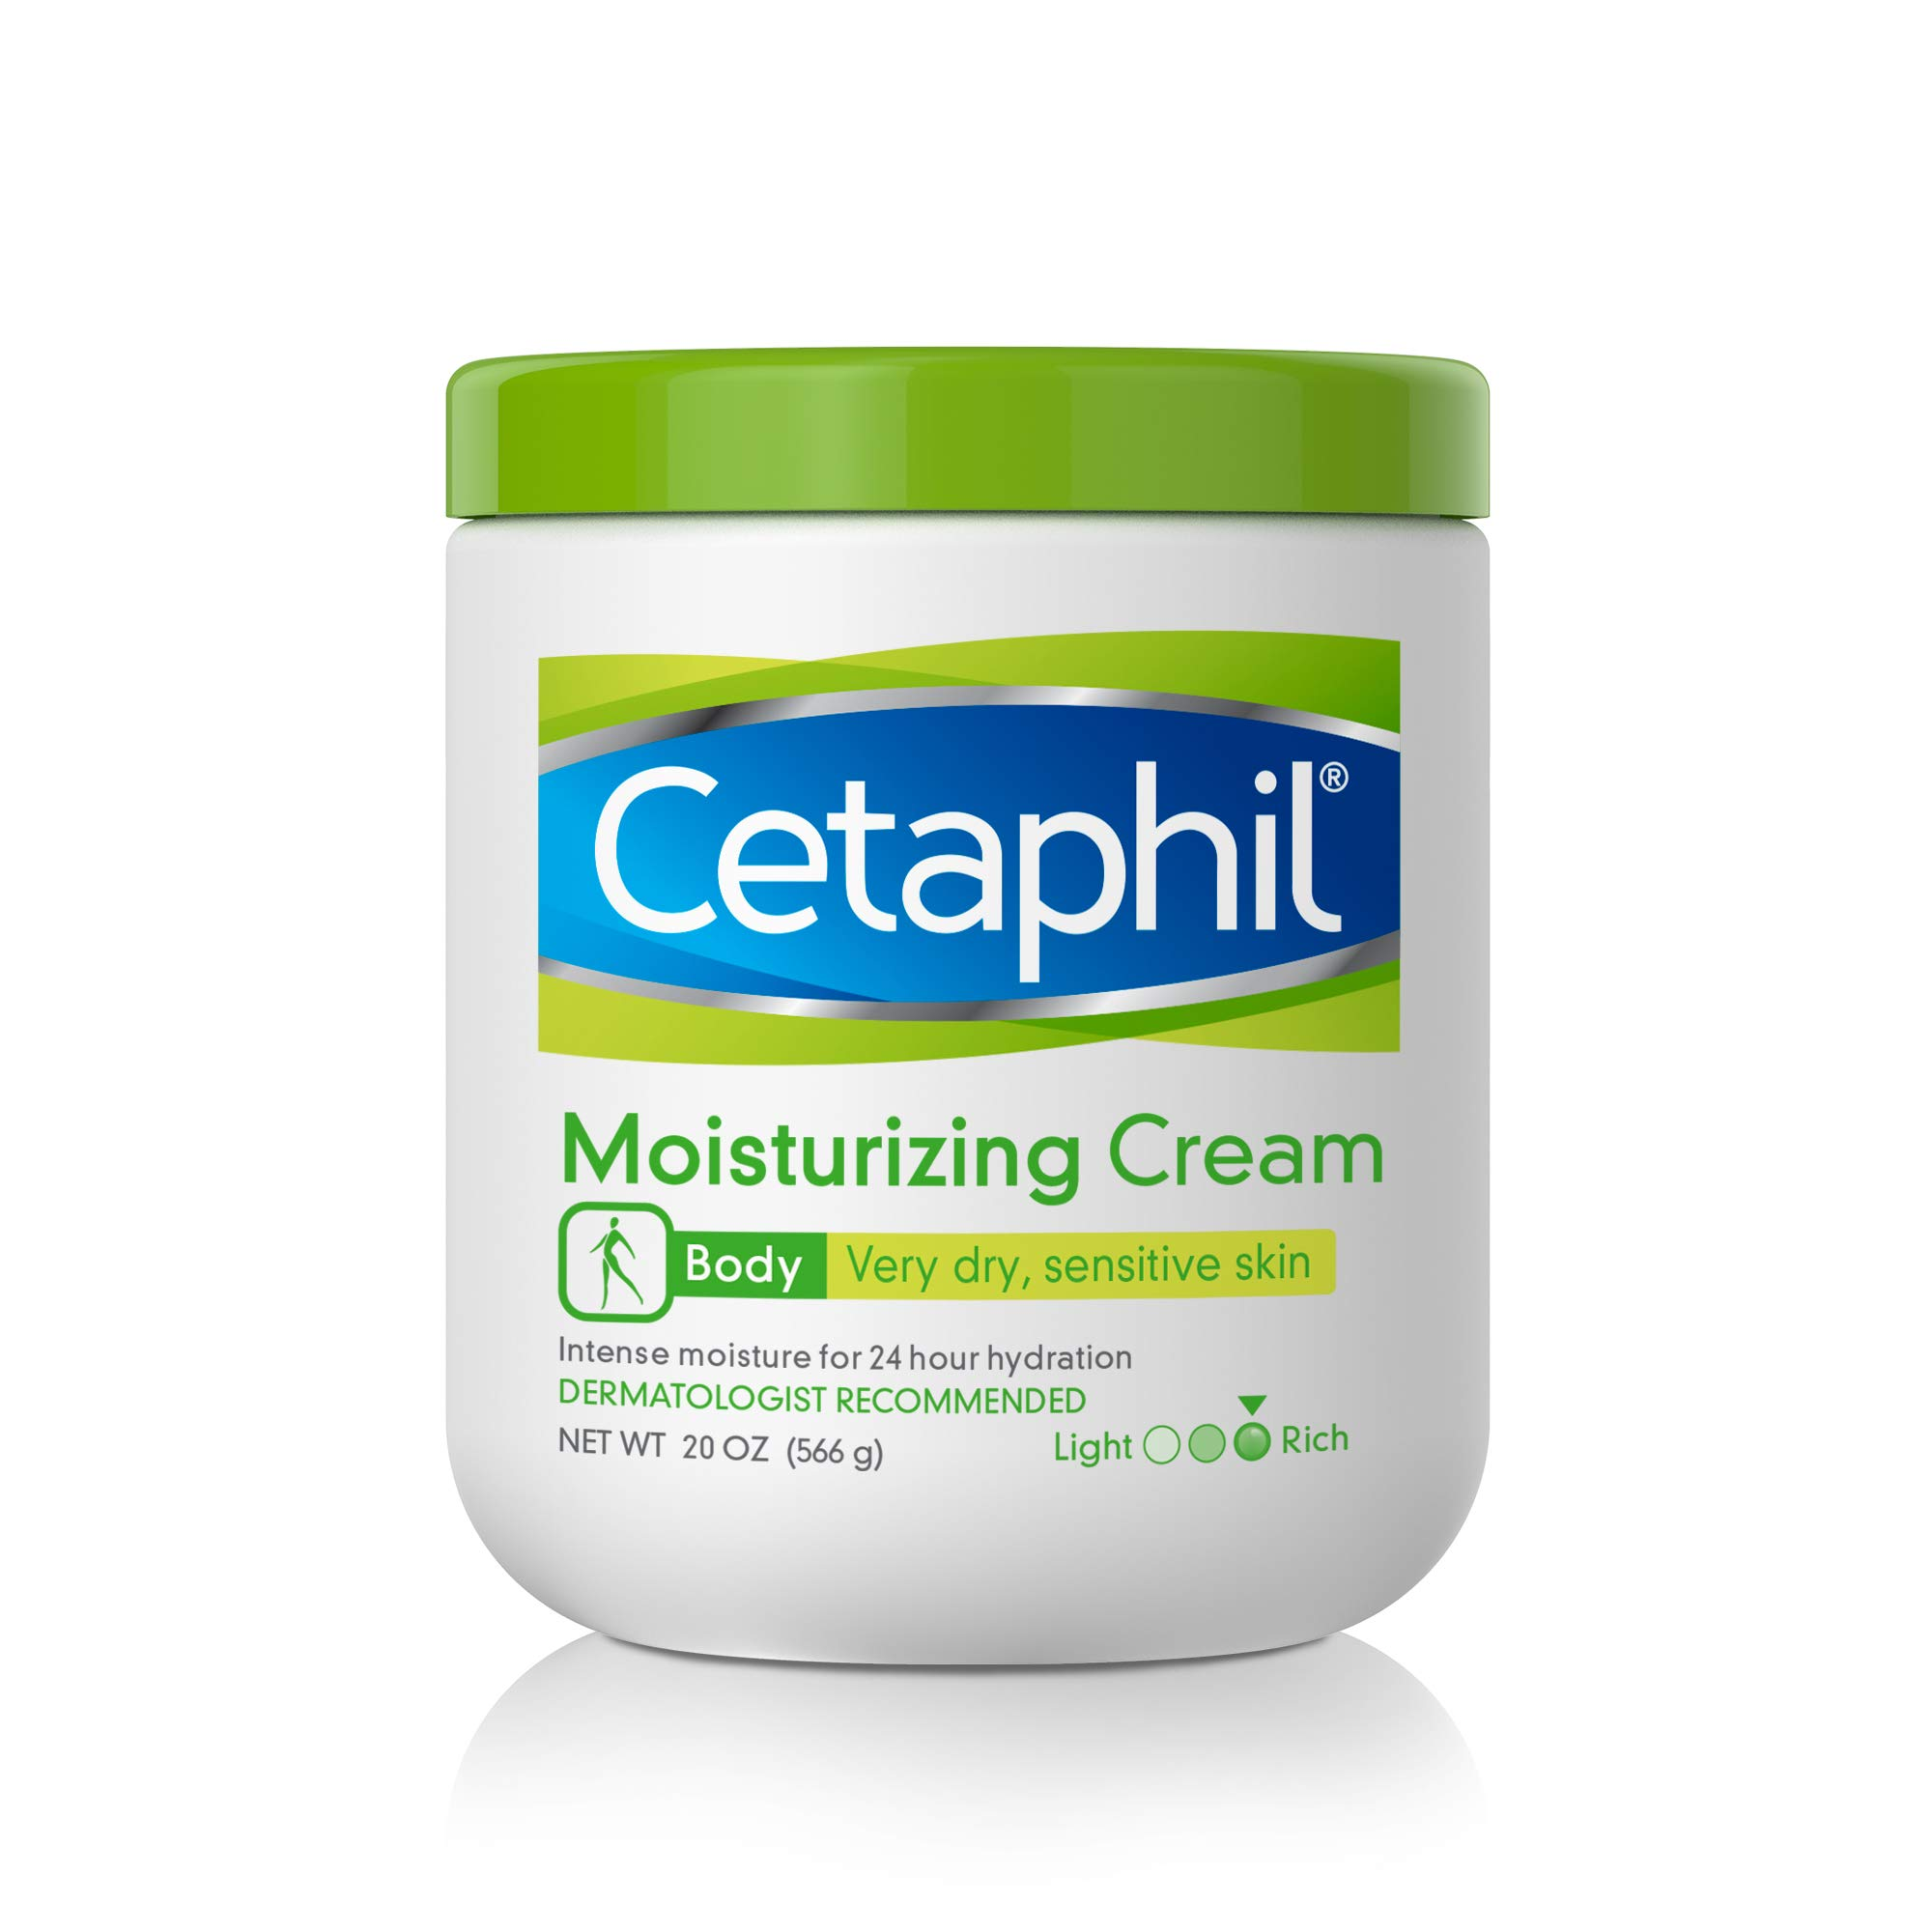 CETAPHIL Moisturizing Cream | 20 oz | Moisturizer For Dry To Very Dry, Sensitive Skin | Completely Restores Skin Barrier In 1 Week | Fragrance Free | Non-Greasy | Dermatologist Recommended Brand